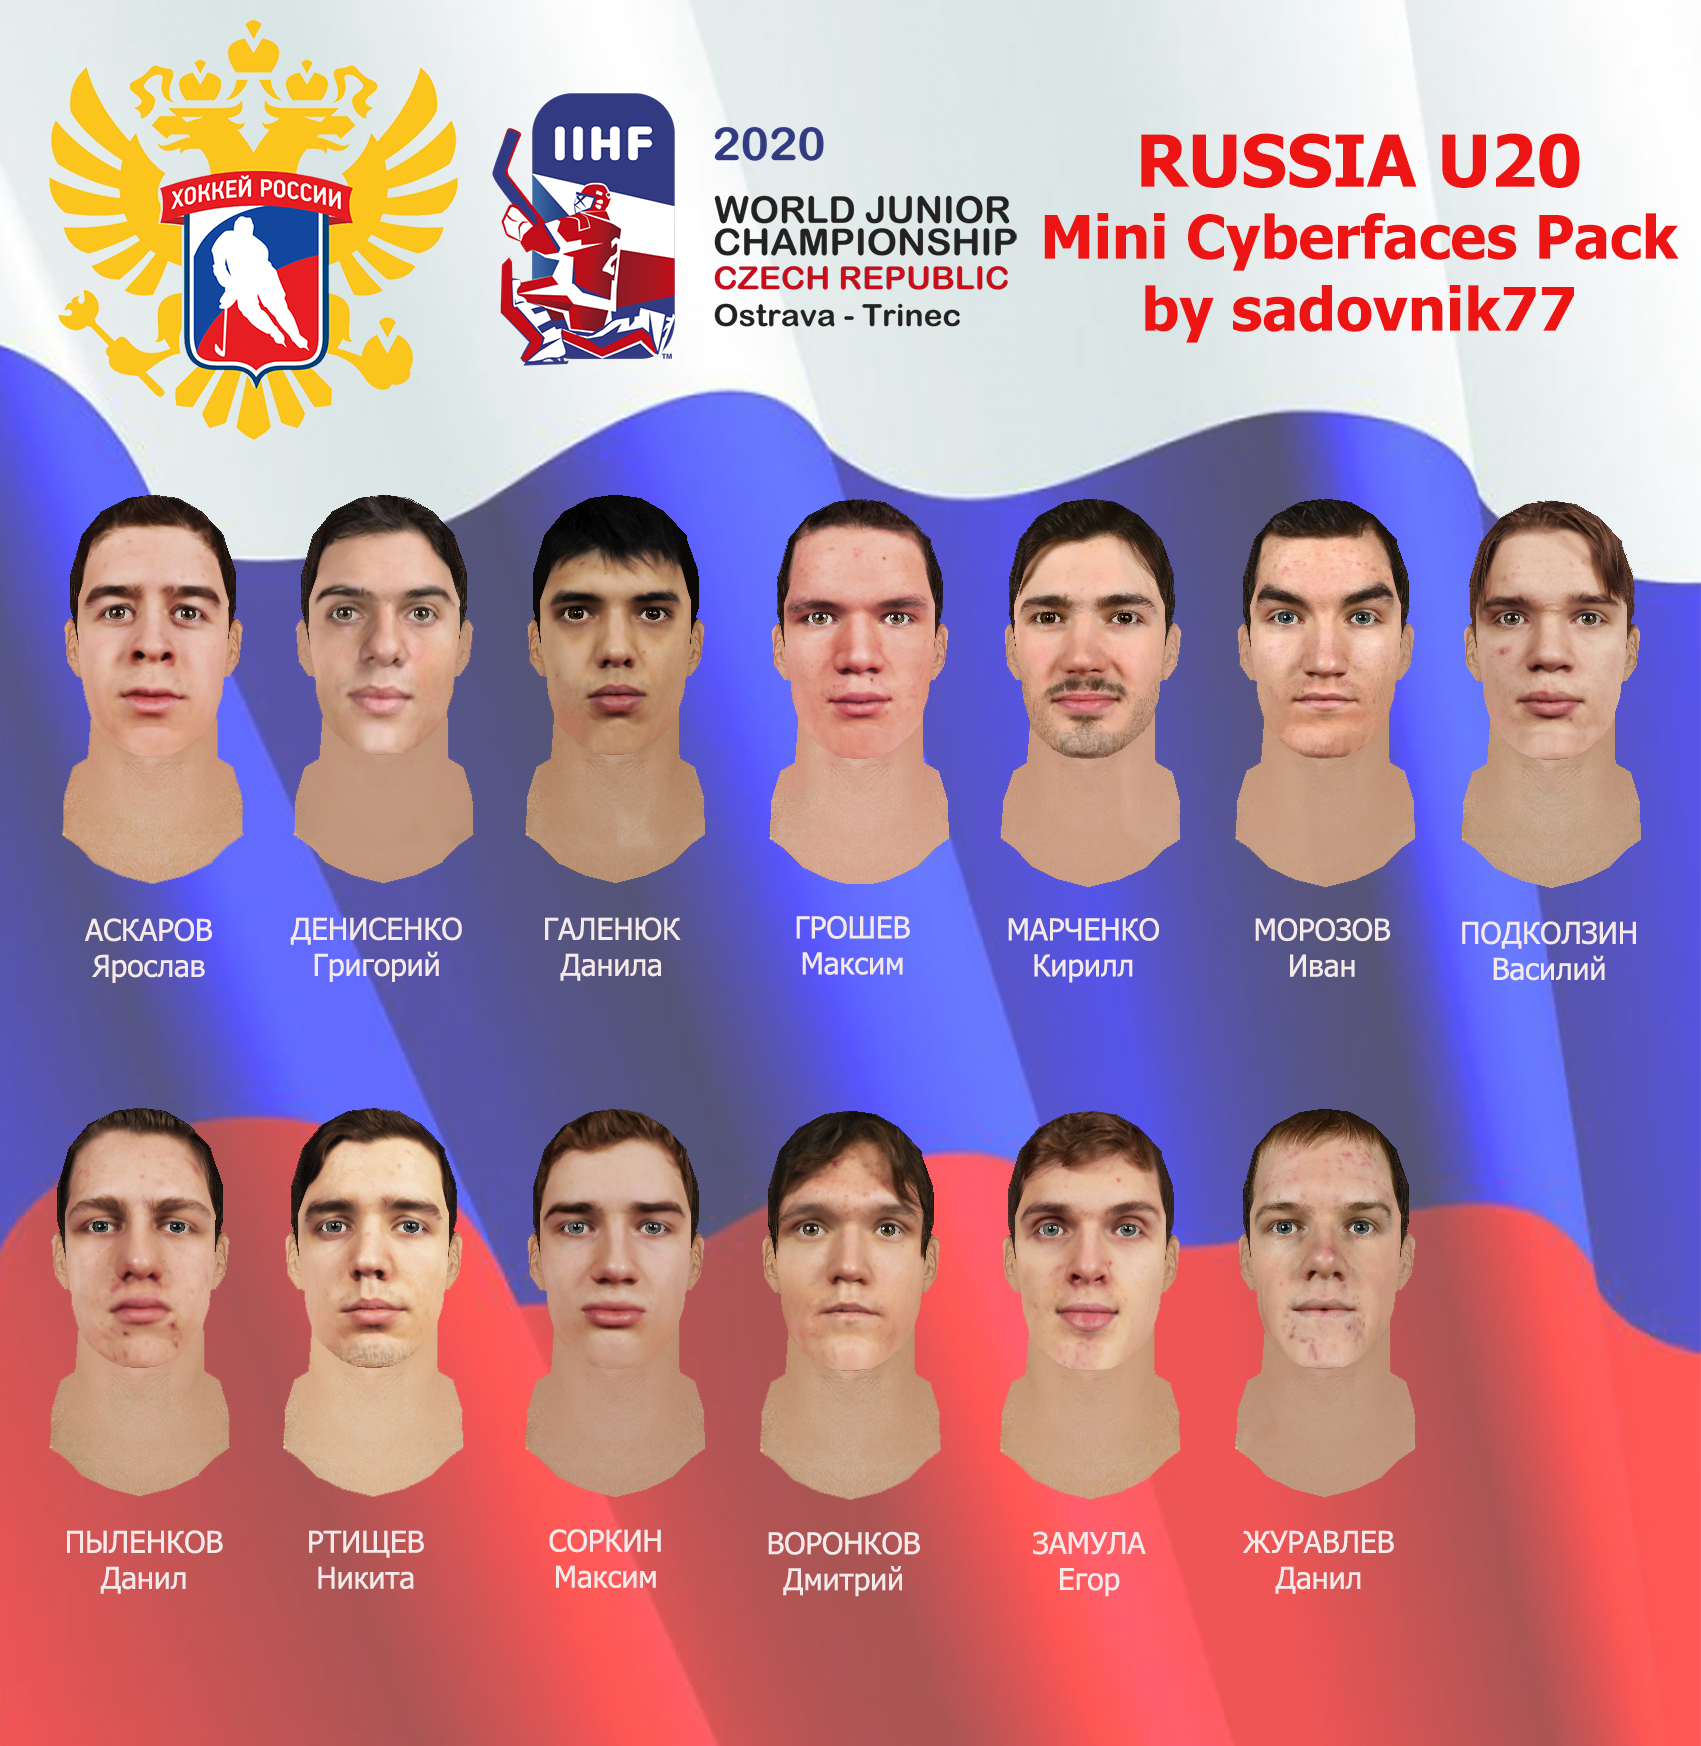 Russia U 20 Mini Cyberfaces Pack